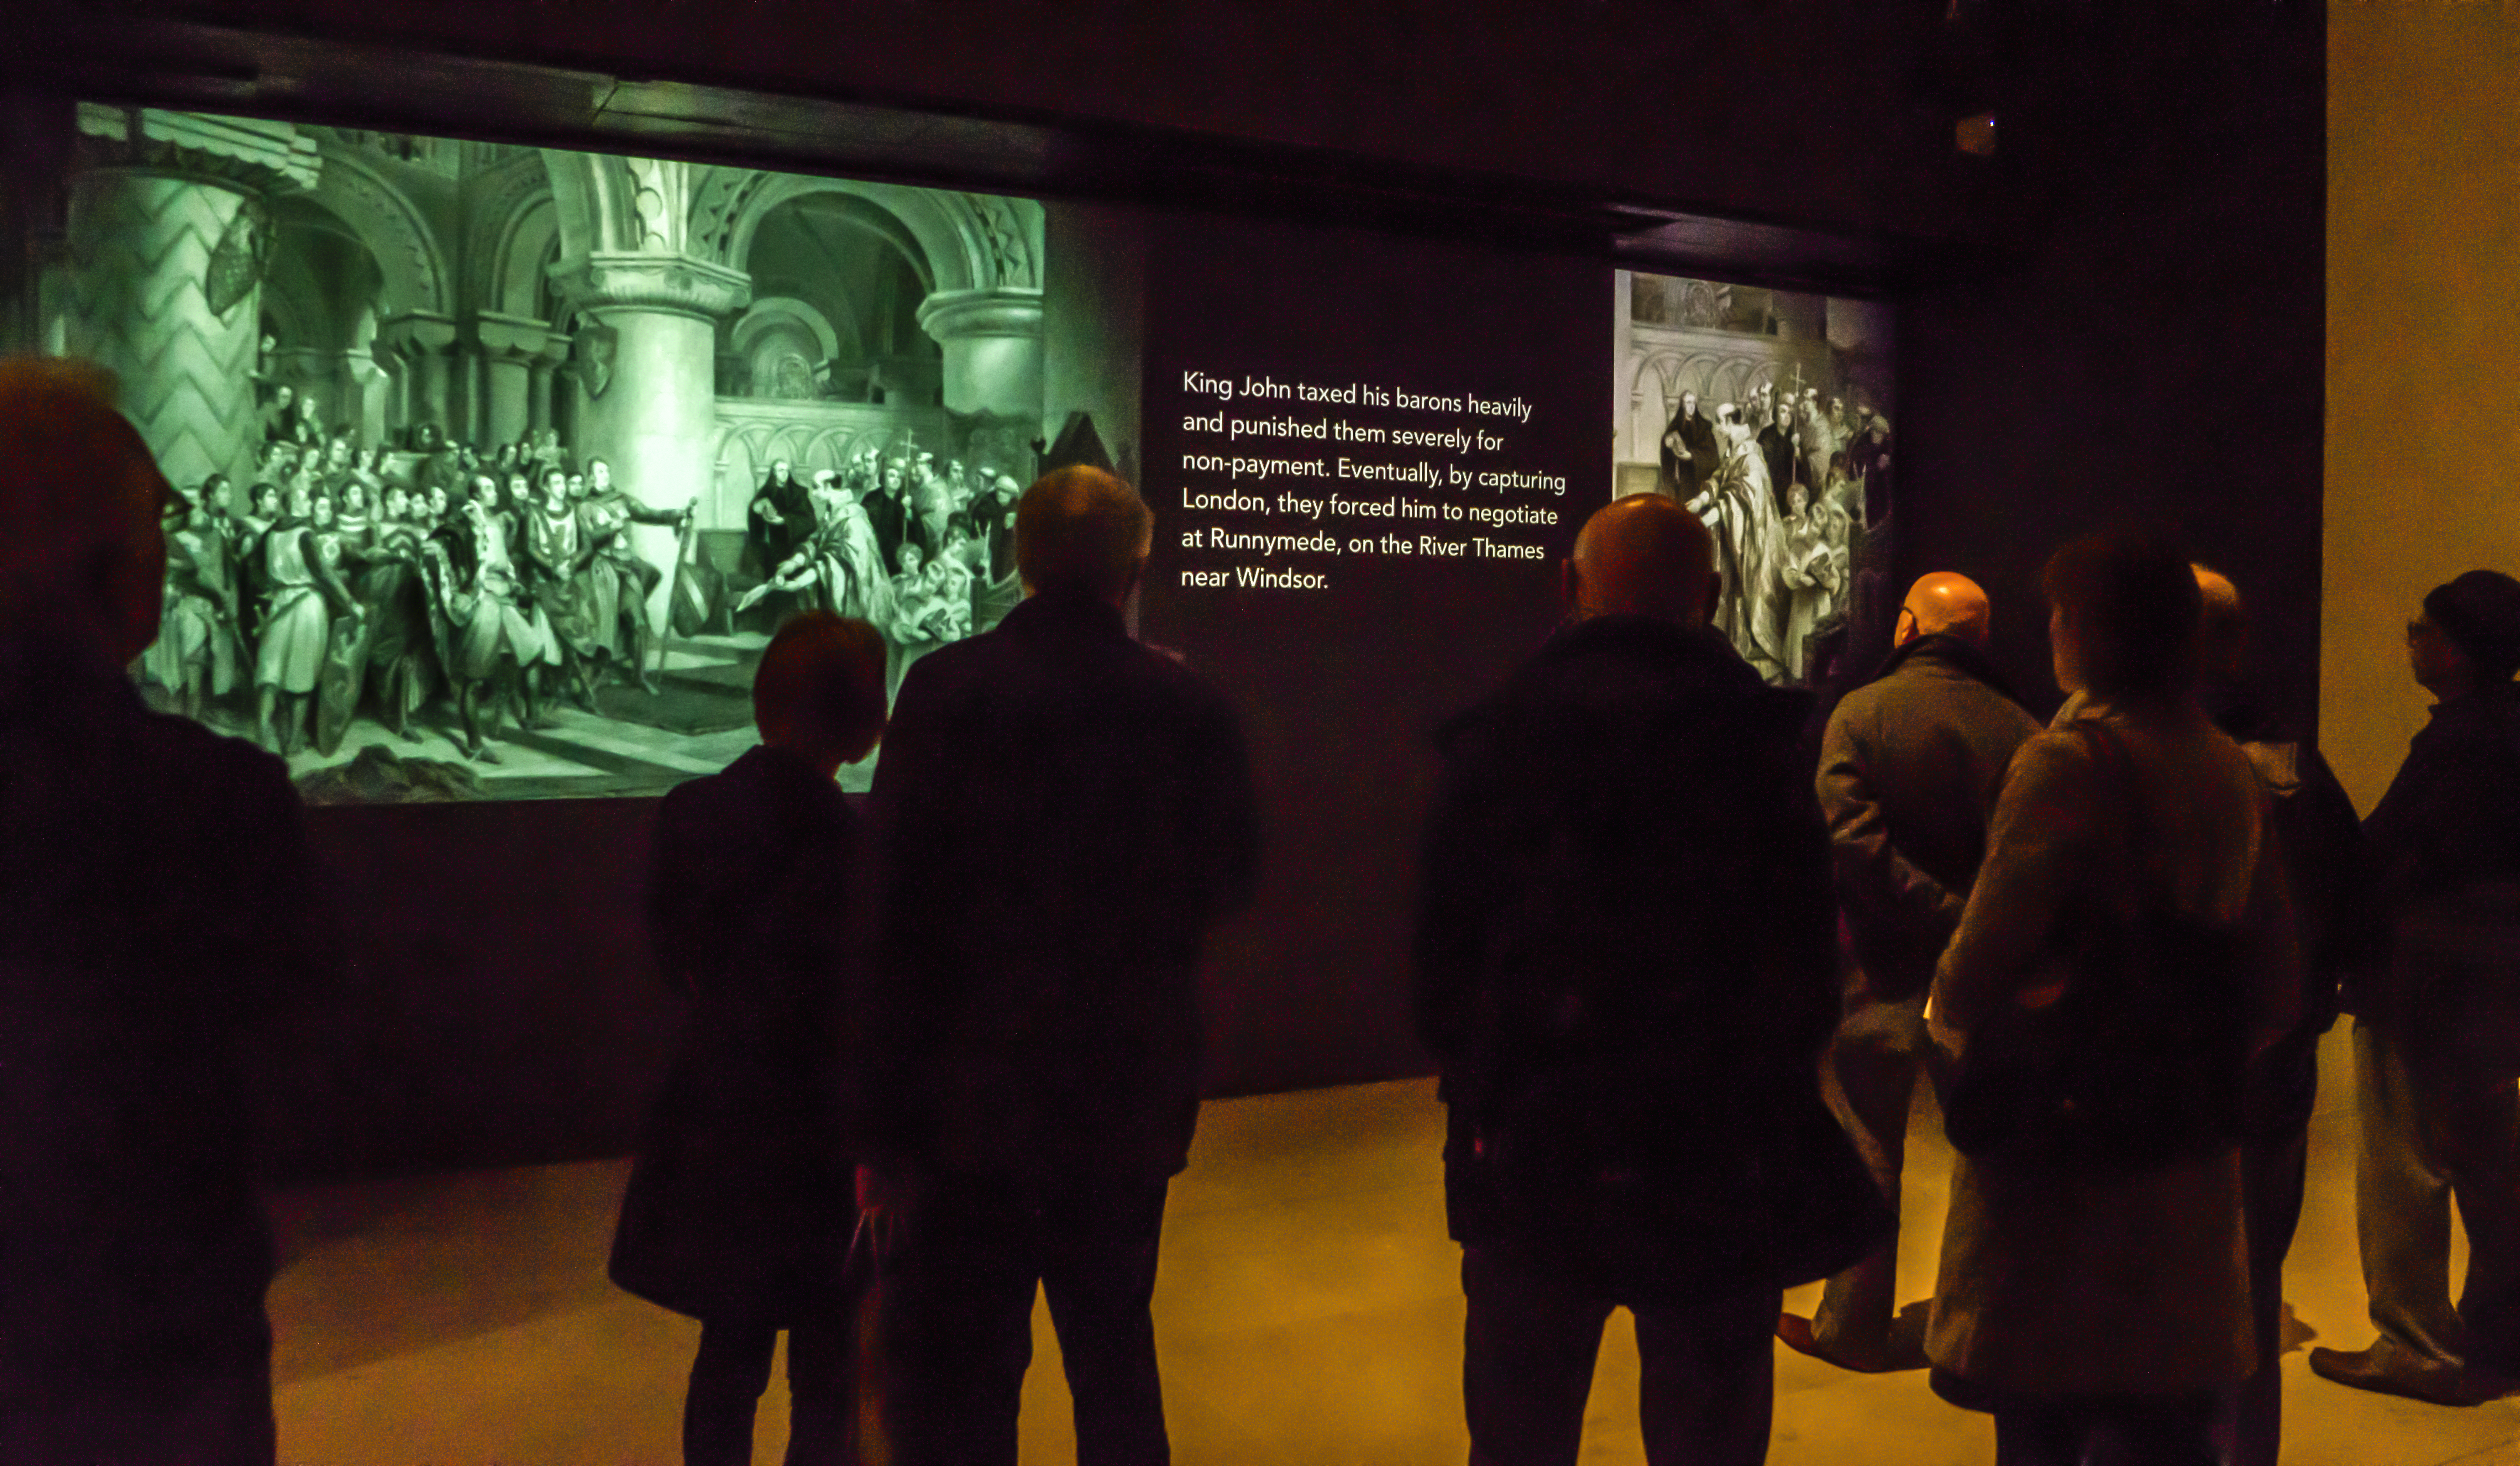 Group visits to British Library exhibitions. Image: Magna Carta Exhibition credit Tony Antoniou